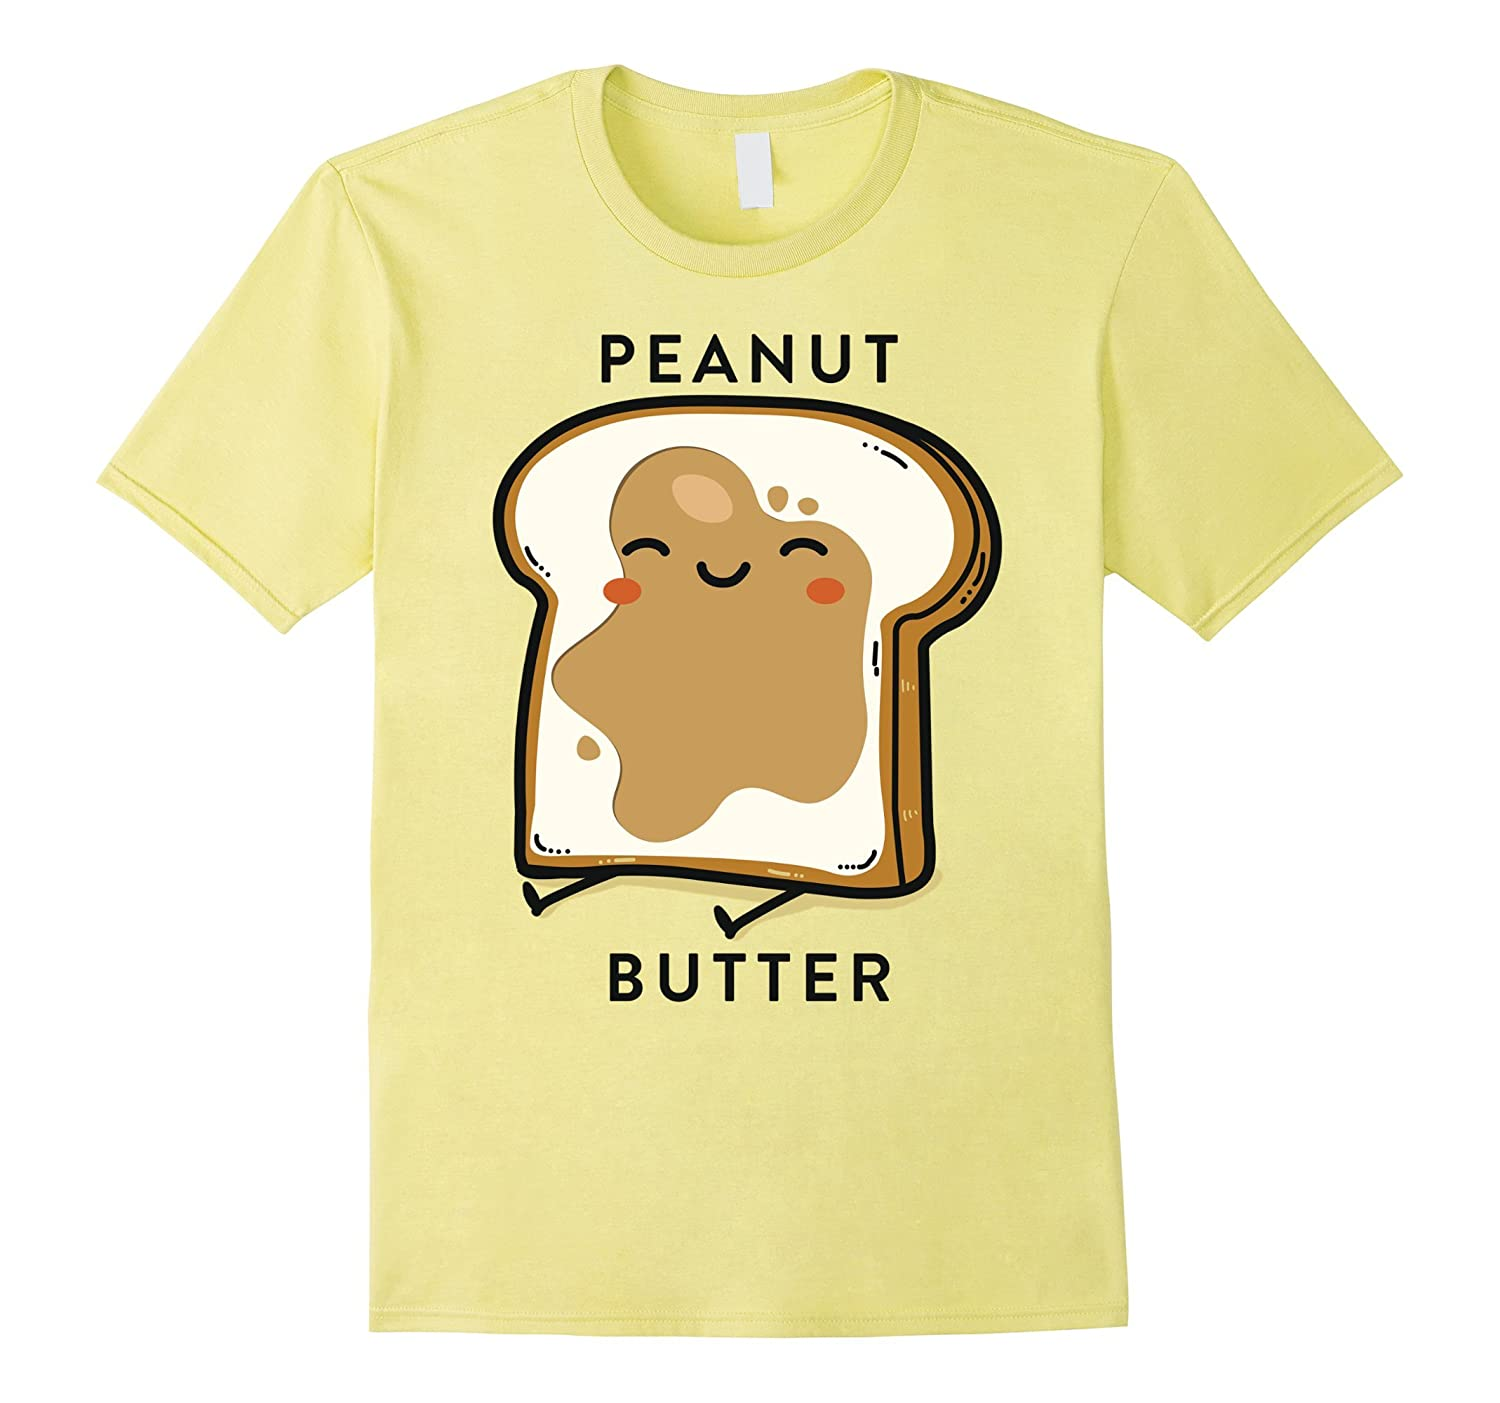 Peanut Butter Jelly 2 Matching BFF Best Friend T Shirts Tees-PL